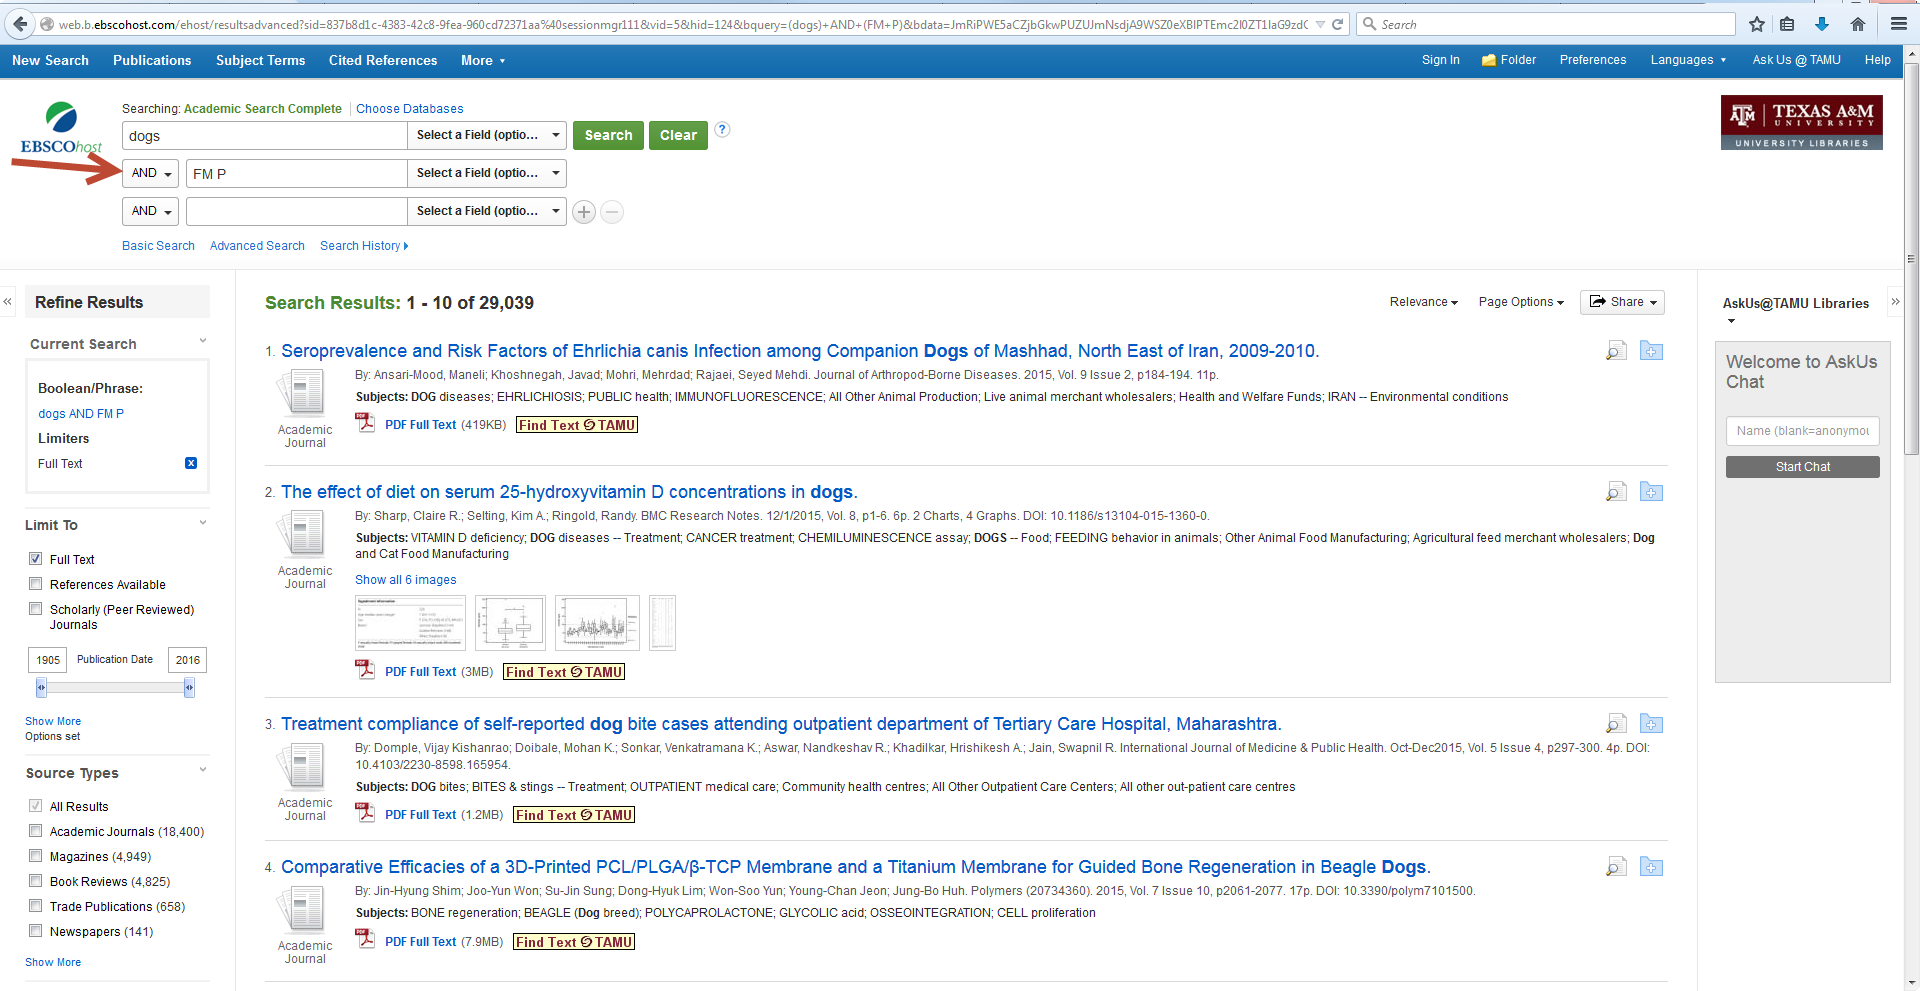 Screenshot showing search terms FM P used in search field of EBSCOhost database to limit results to PDF files